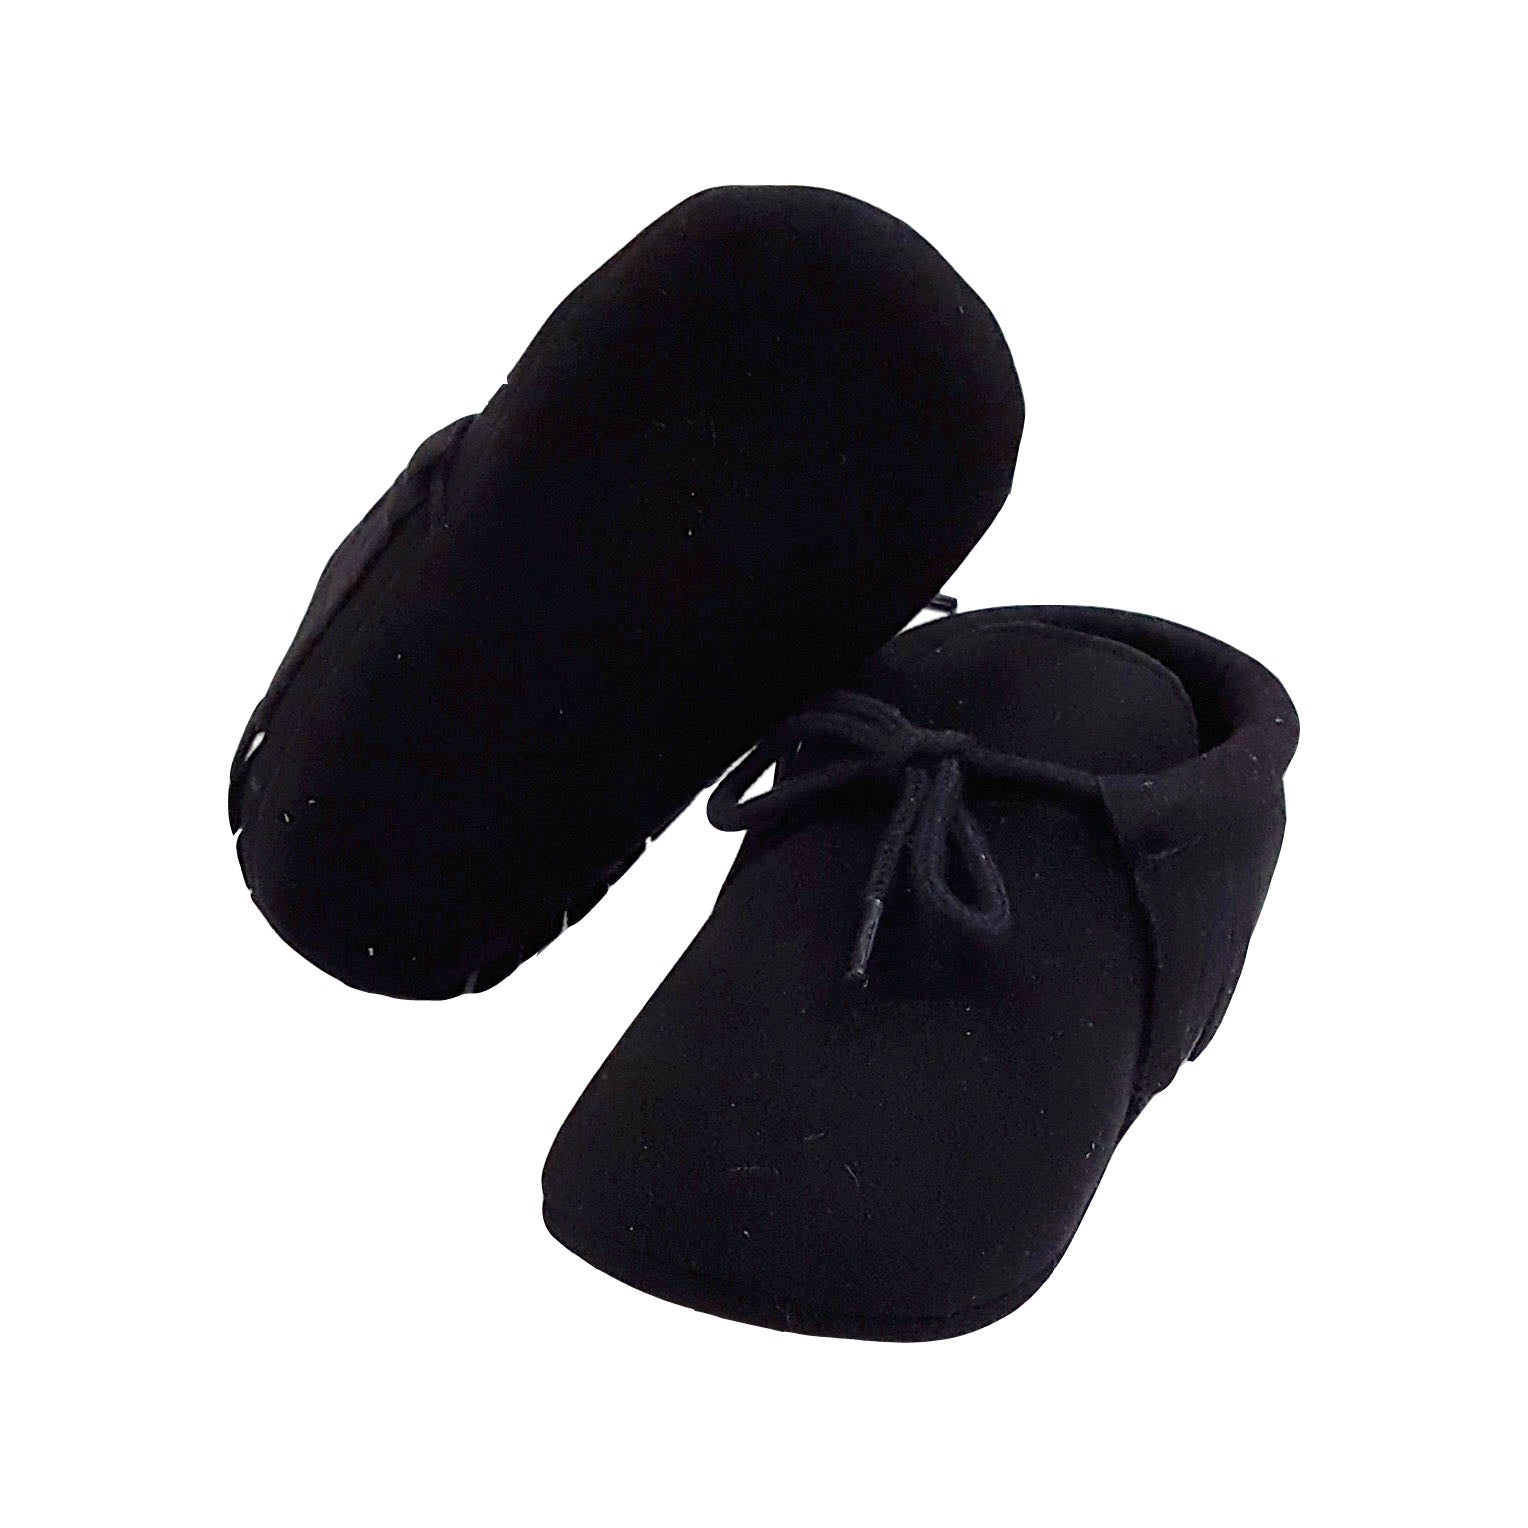 Piper (Pre-Walker Baby Shoes) - B120 Black Moccasin